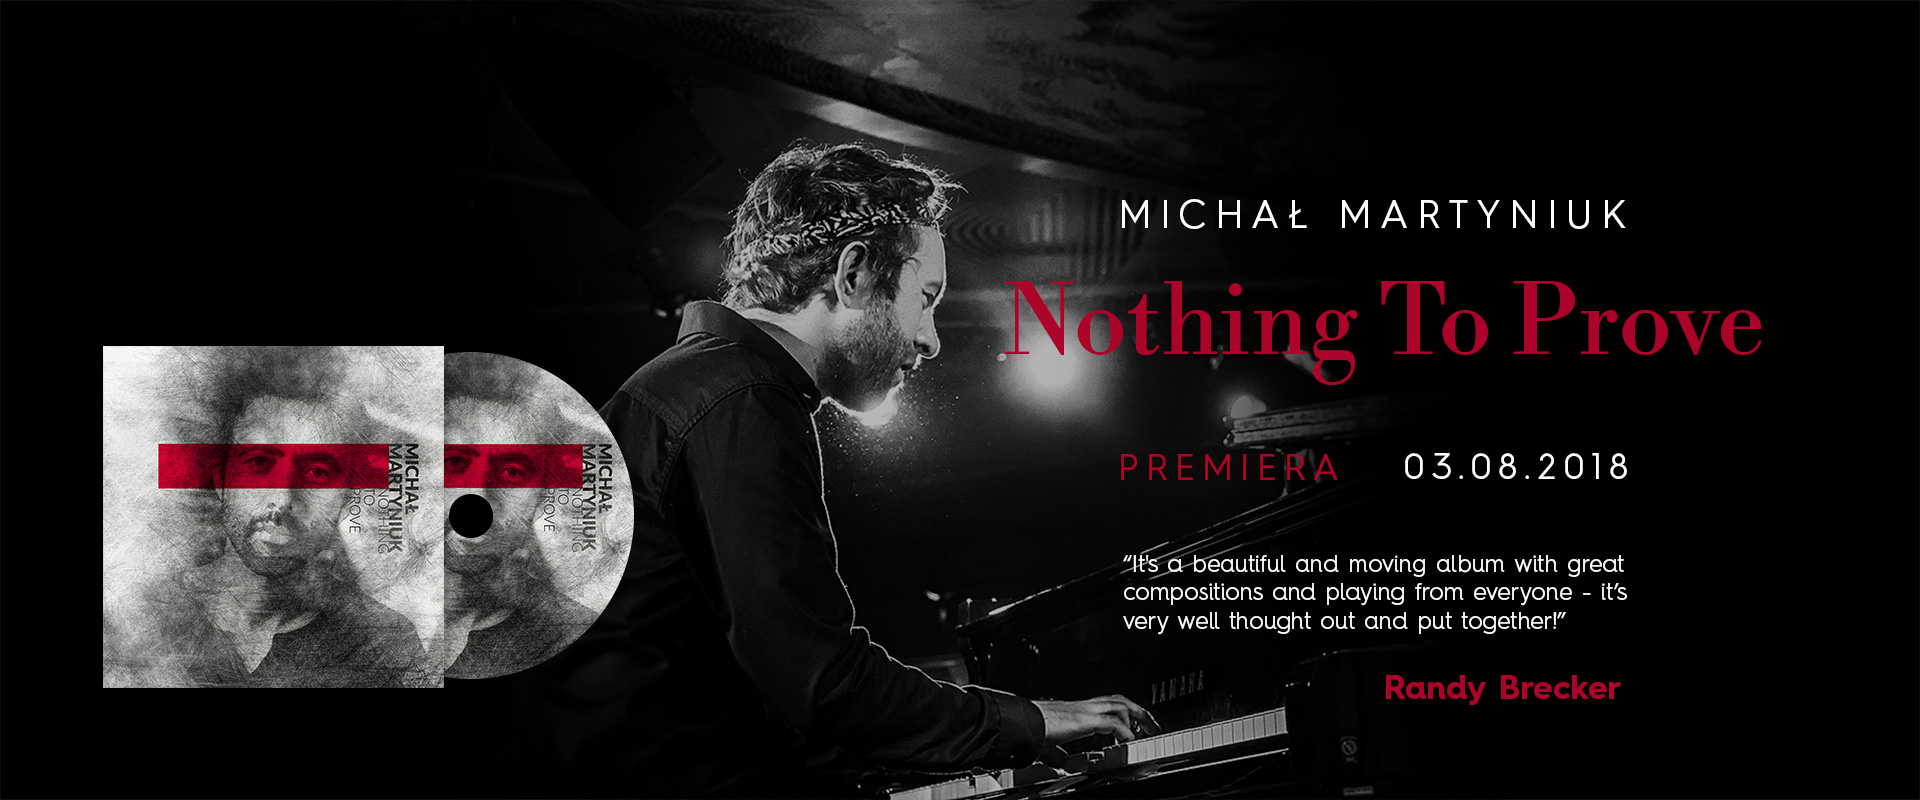 Michał Martyniuk - Nothing To Prove